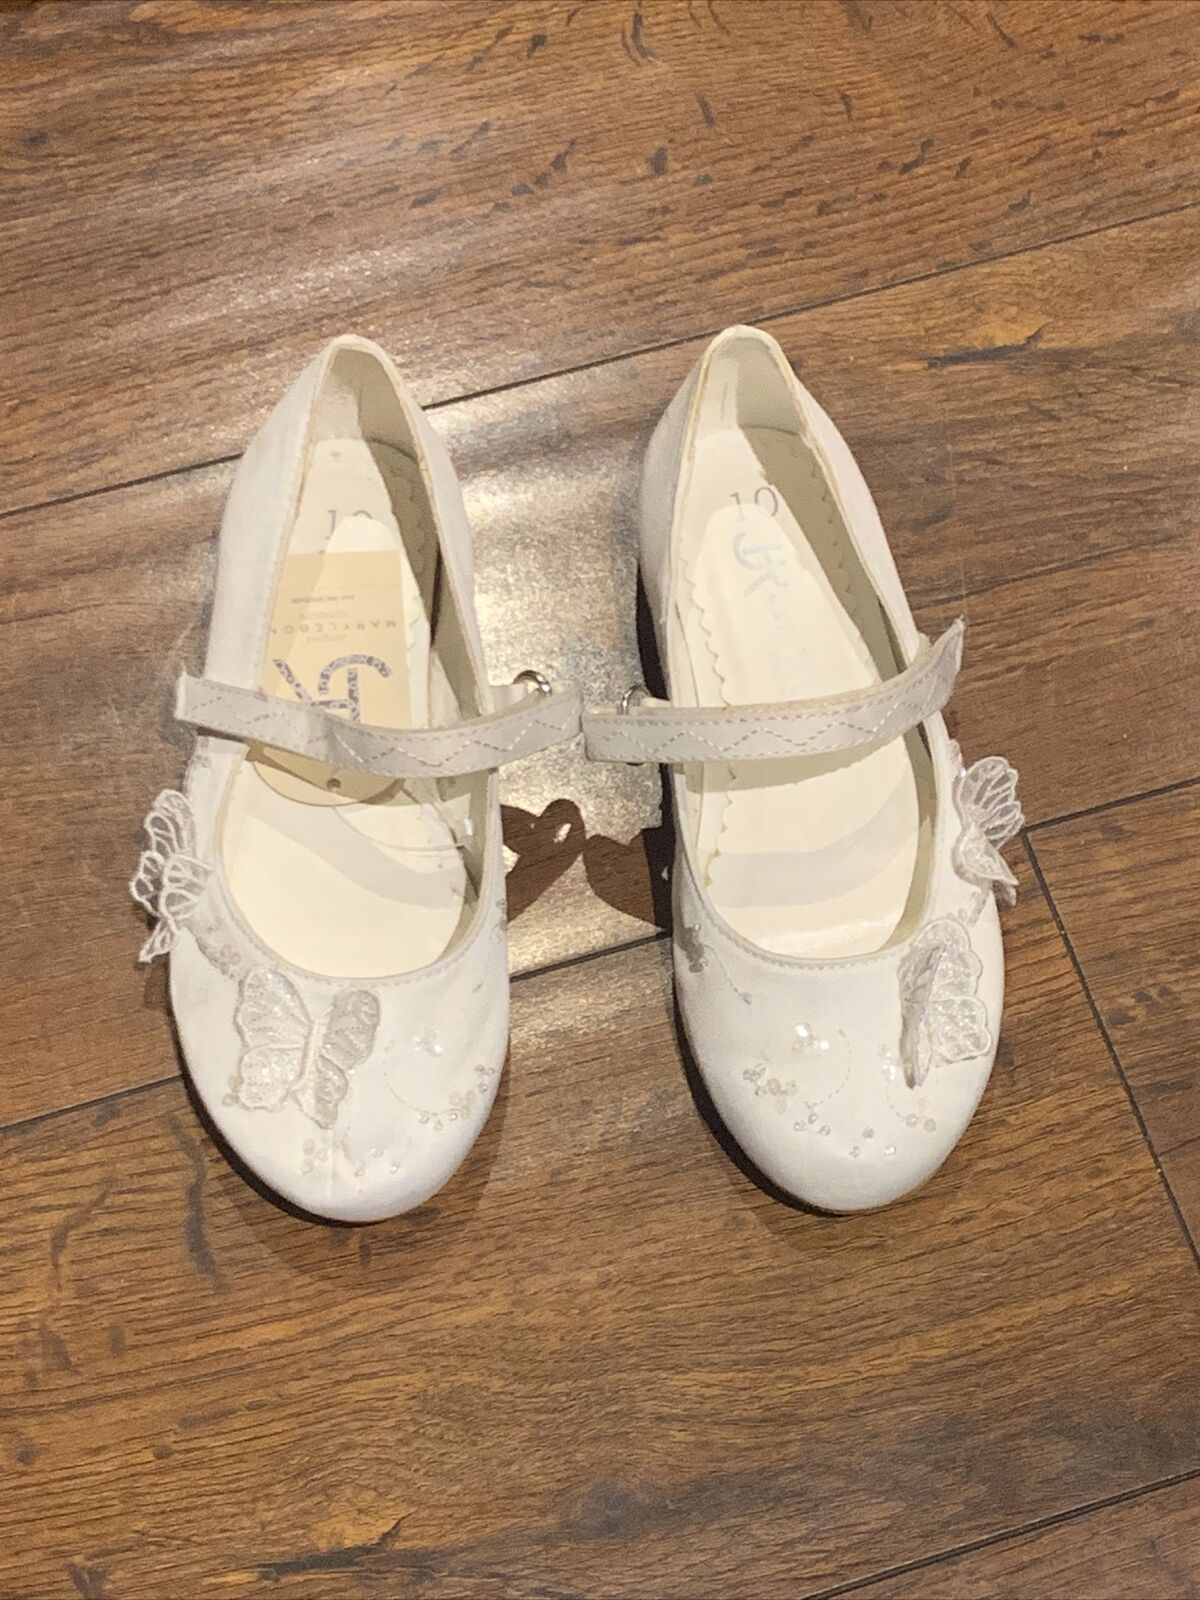 BHS Girls Mary Jane Occasion Party Bridesmaid Shoes - Size 10